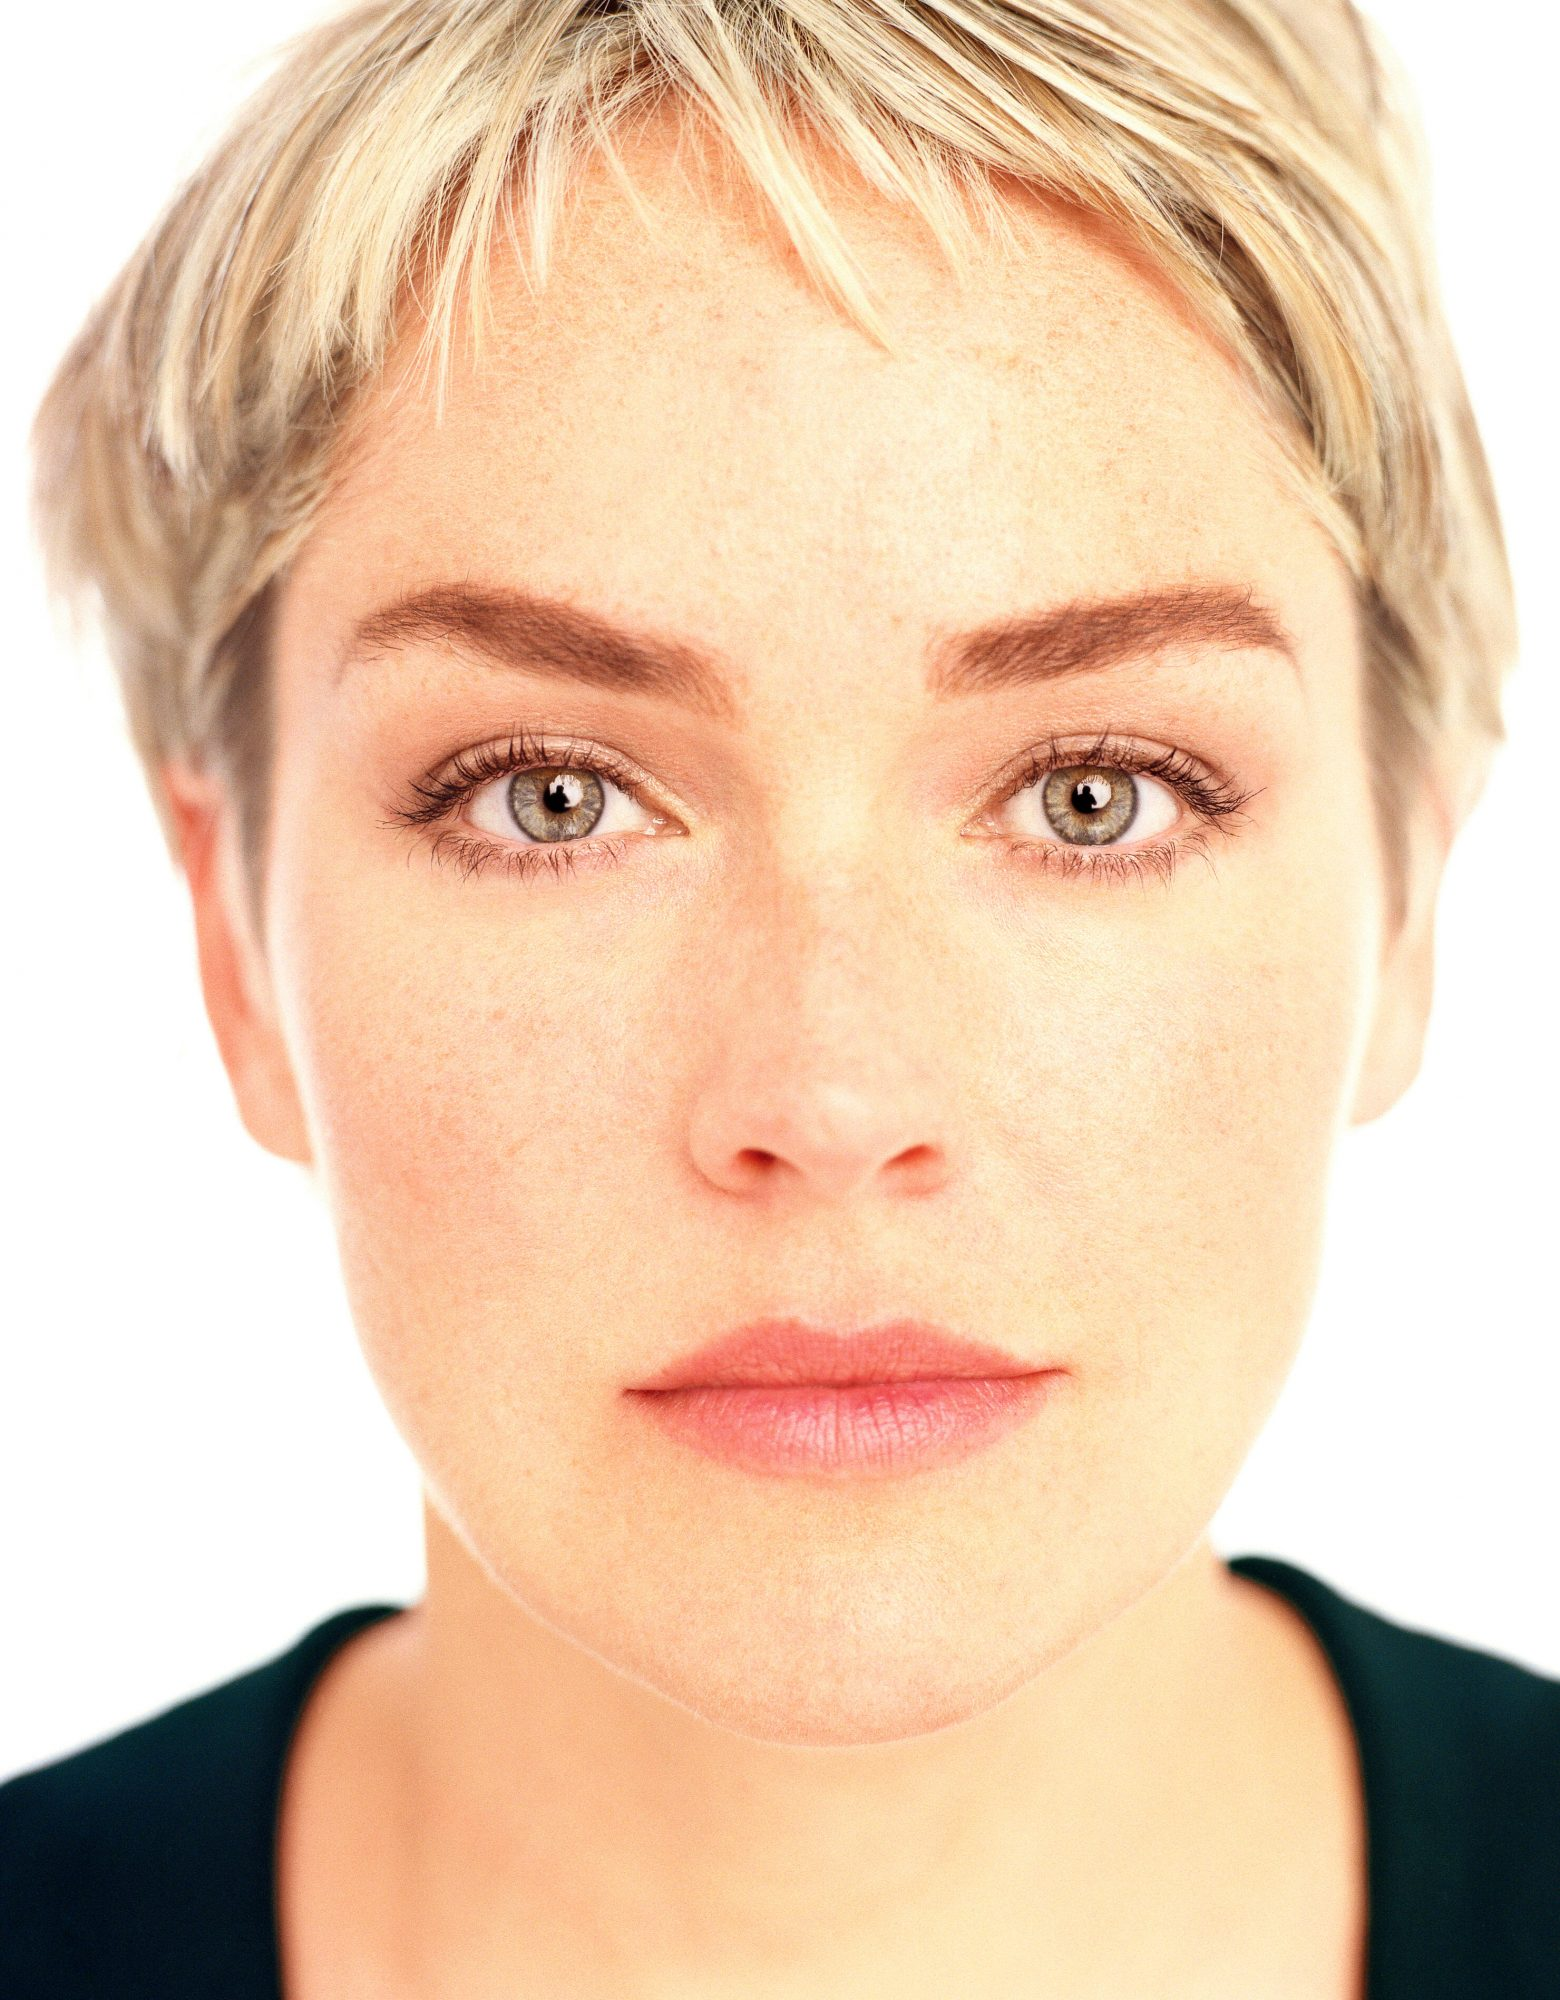 Look at Me by Firooz Shahedi photo book - sharon stone